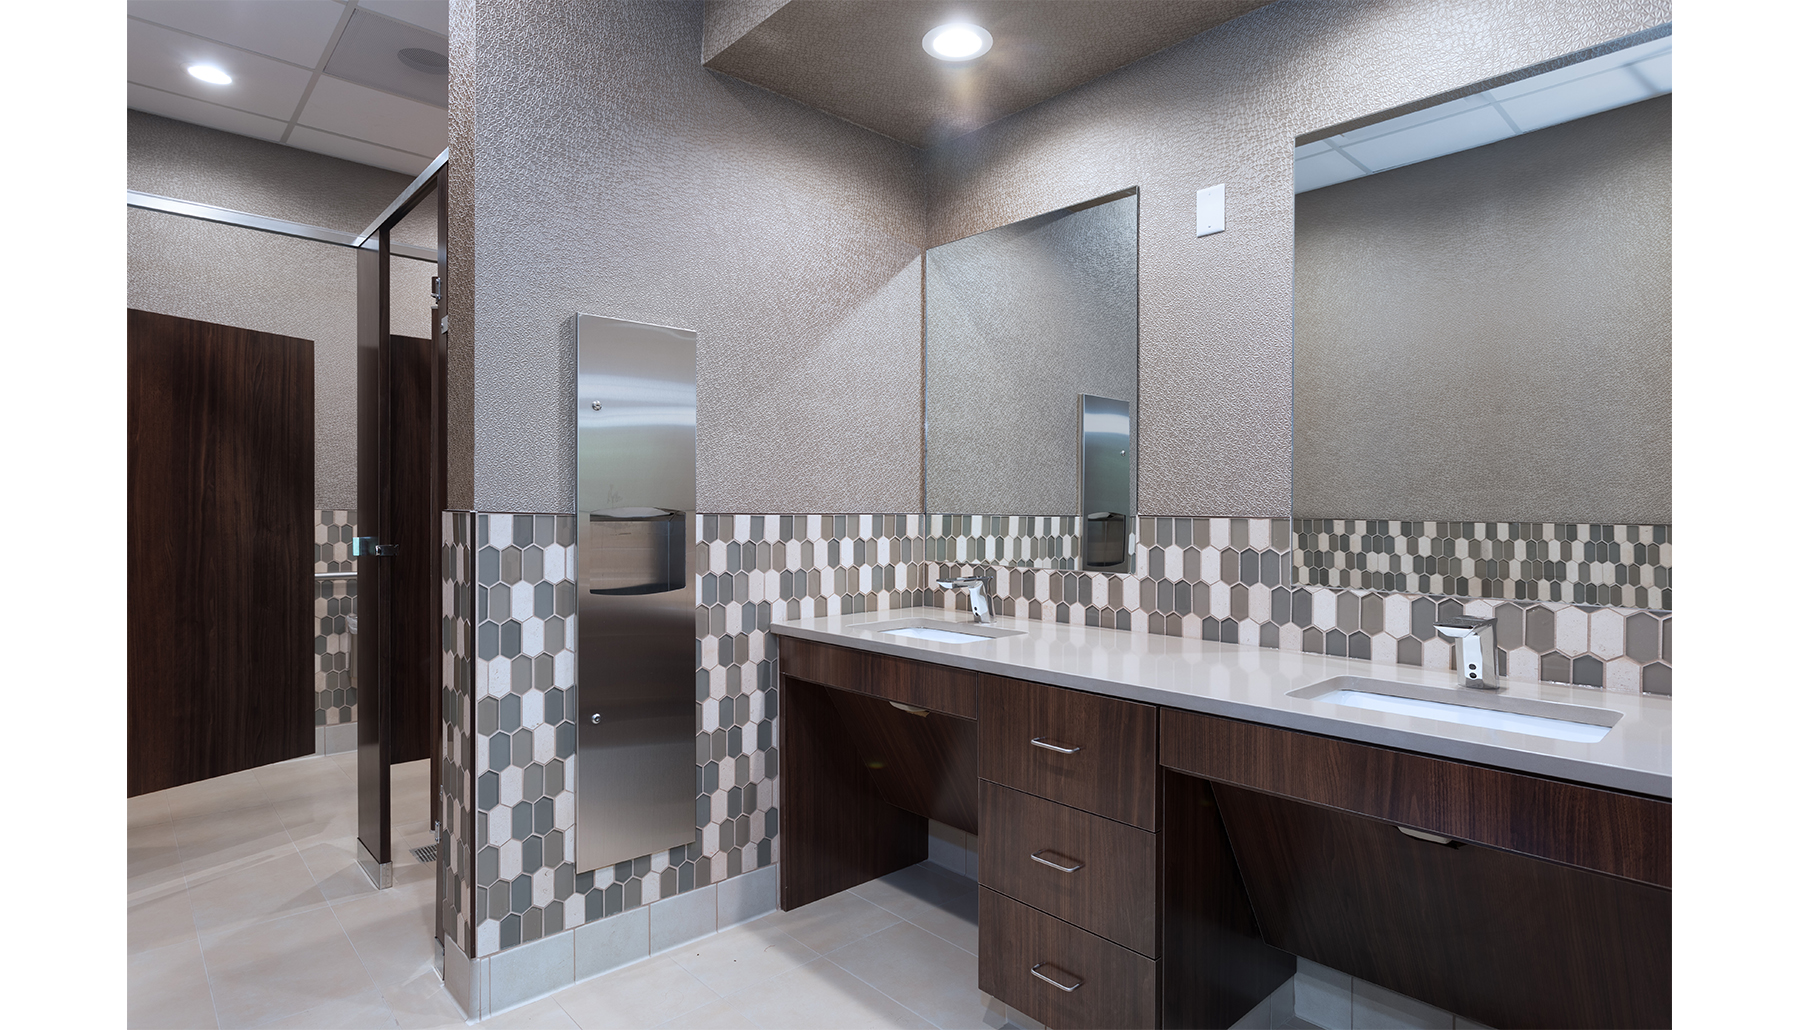 TM5 Bathroom Overall